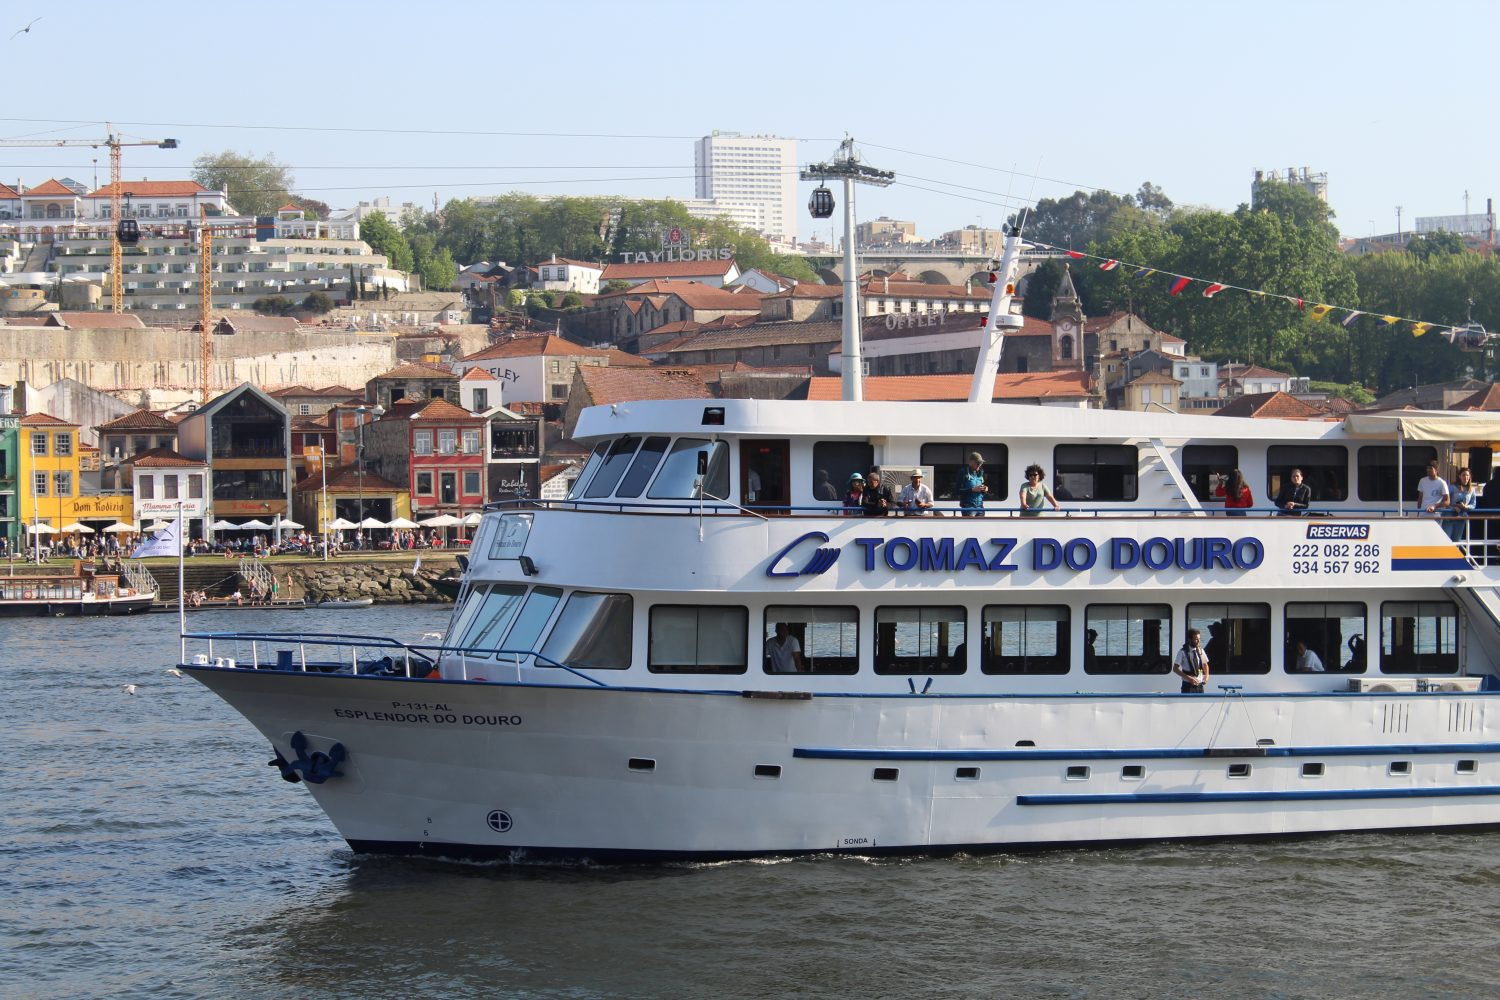 Boat douro cruise in Porto and Vila Nova de Gaia